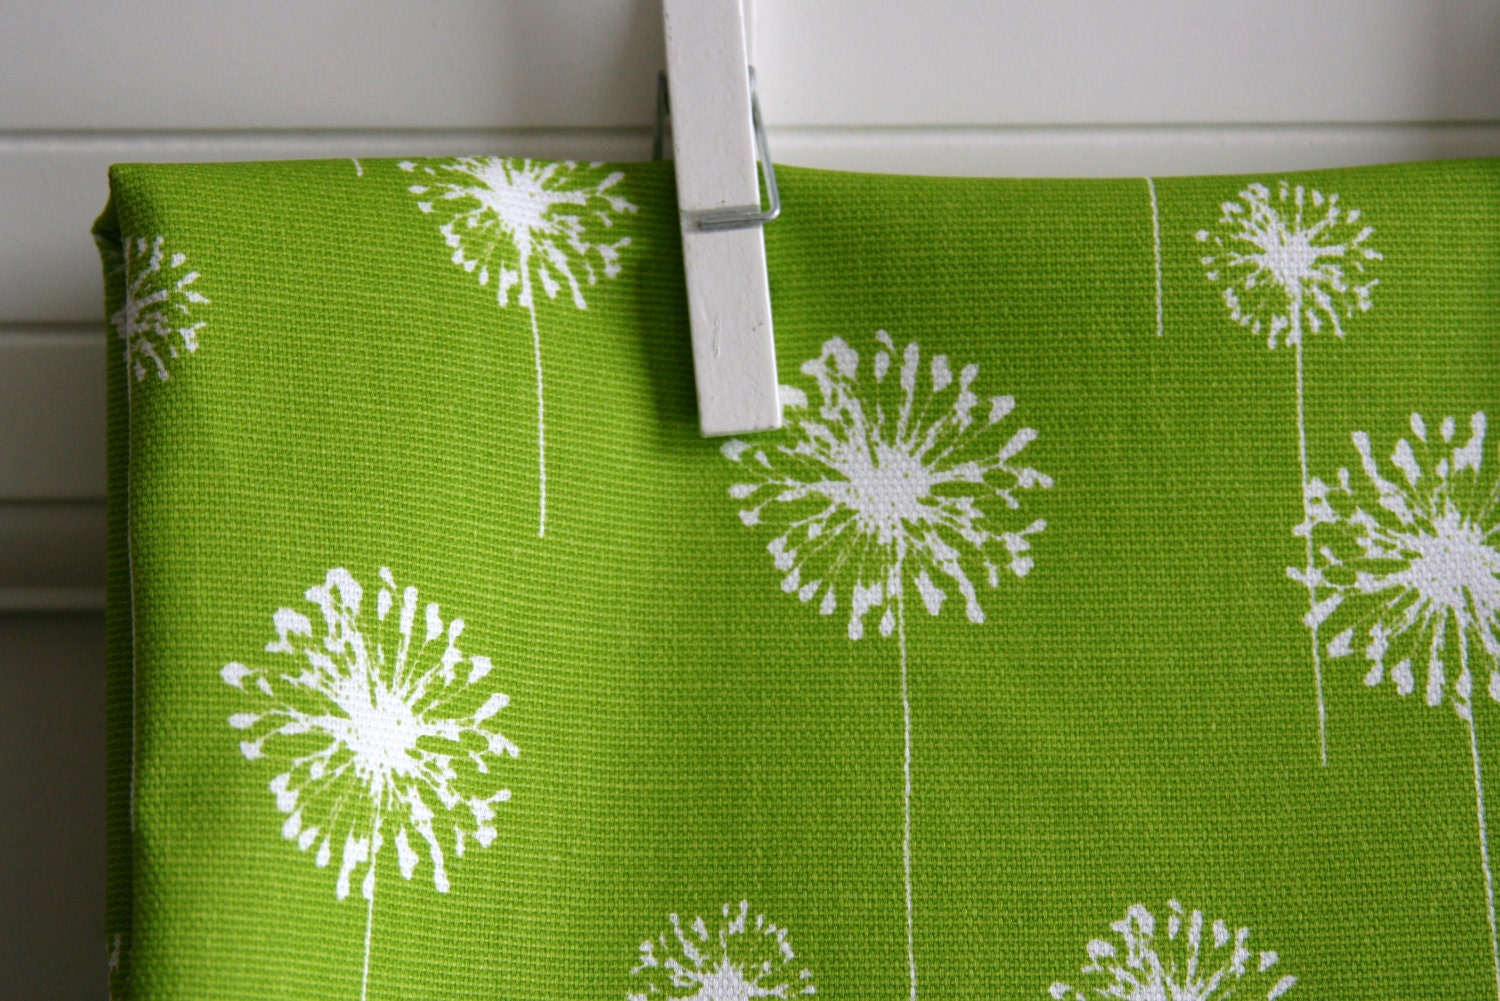 Chartreuse Dandelion Home Decor Weight Fabric By SewFineFabric